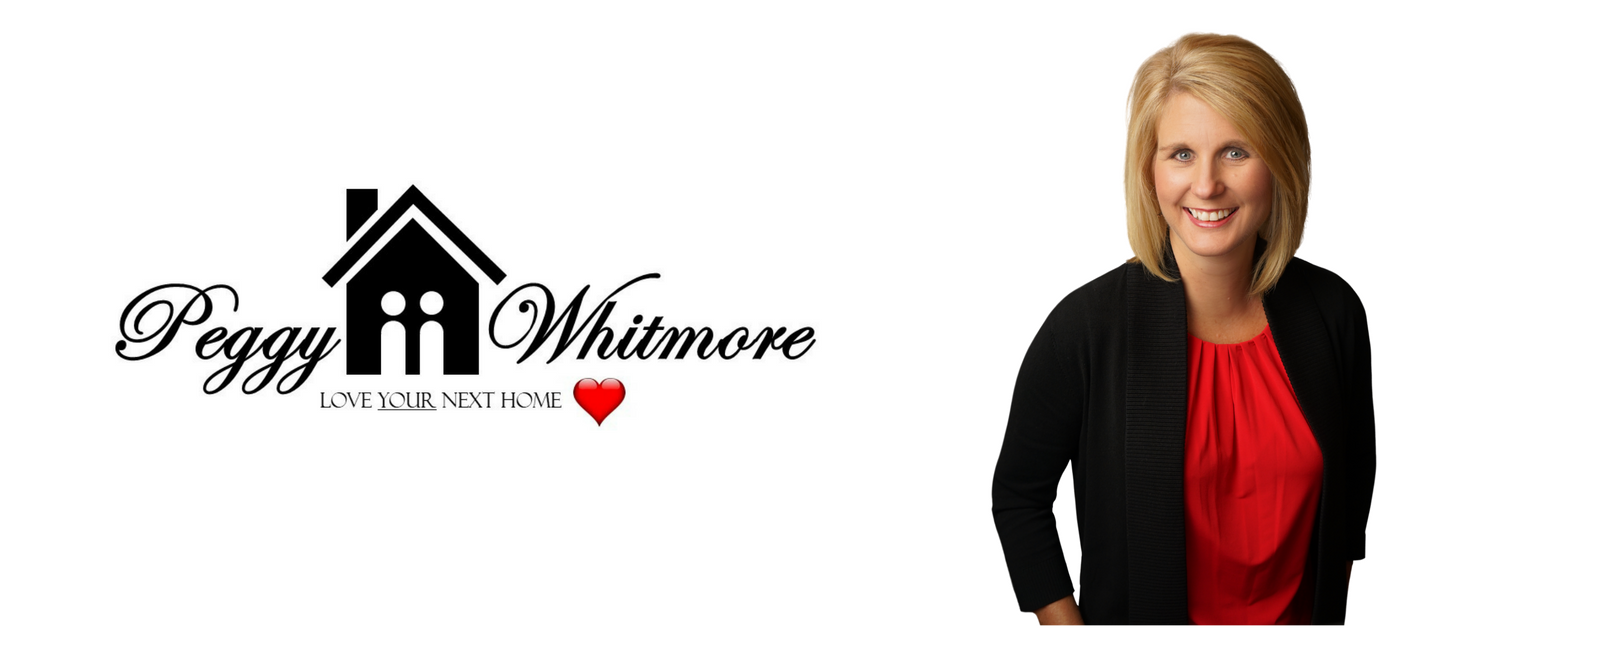 Listings Search - Peggy Whitmore